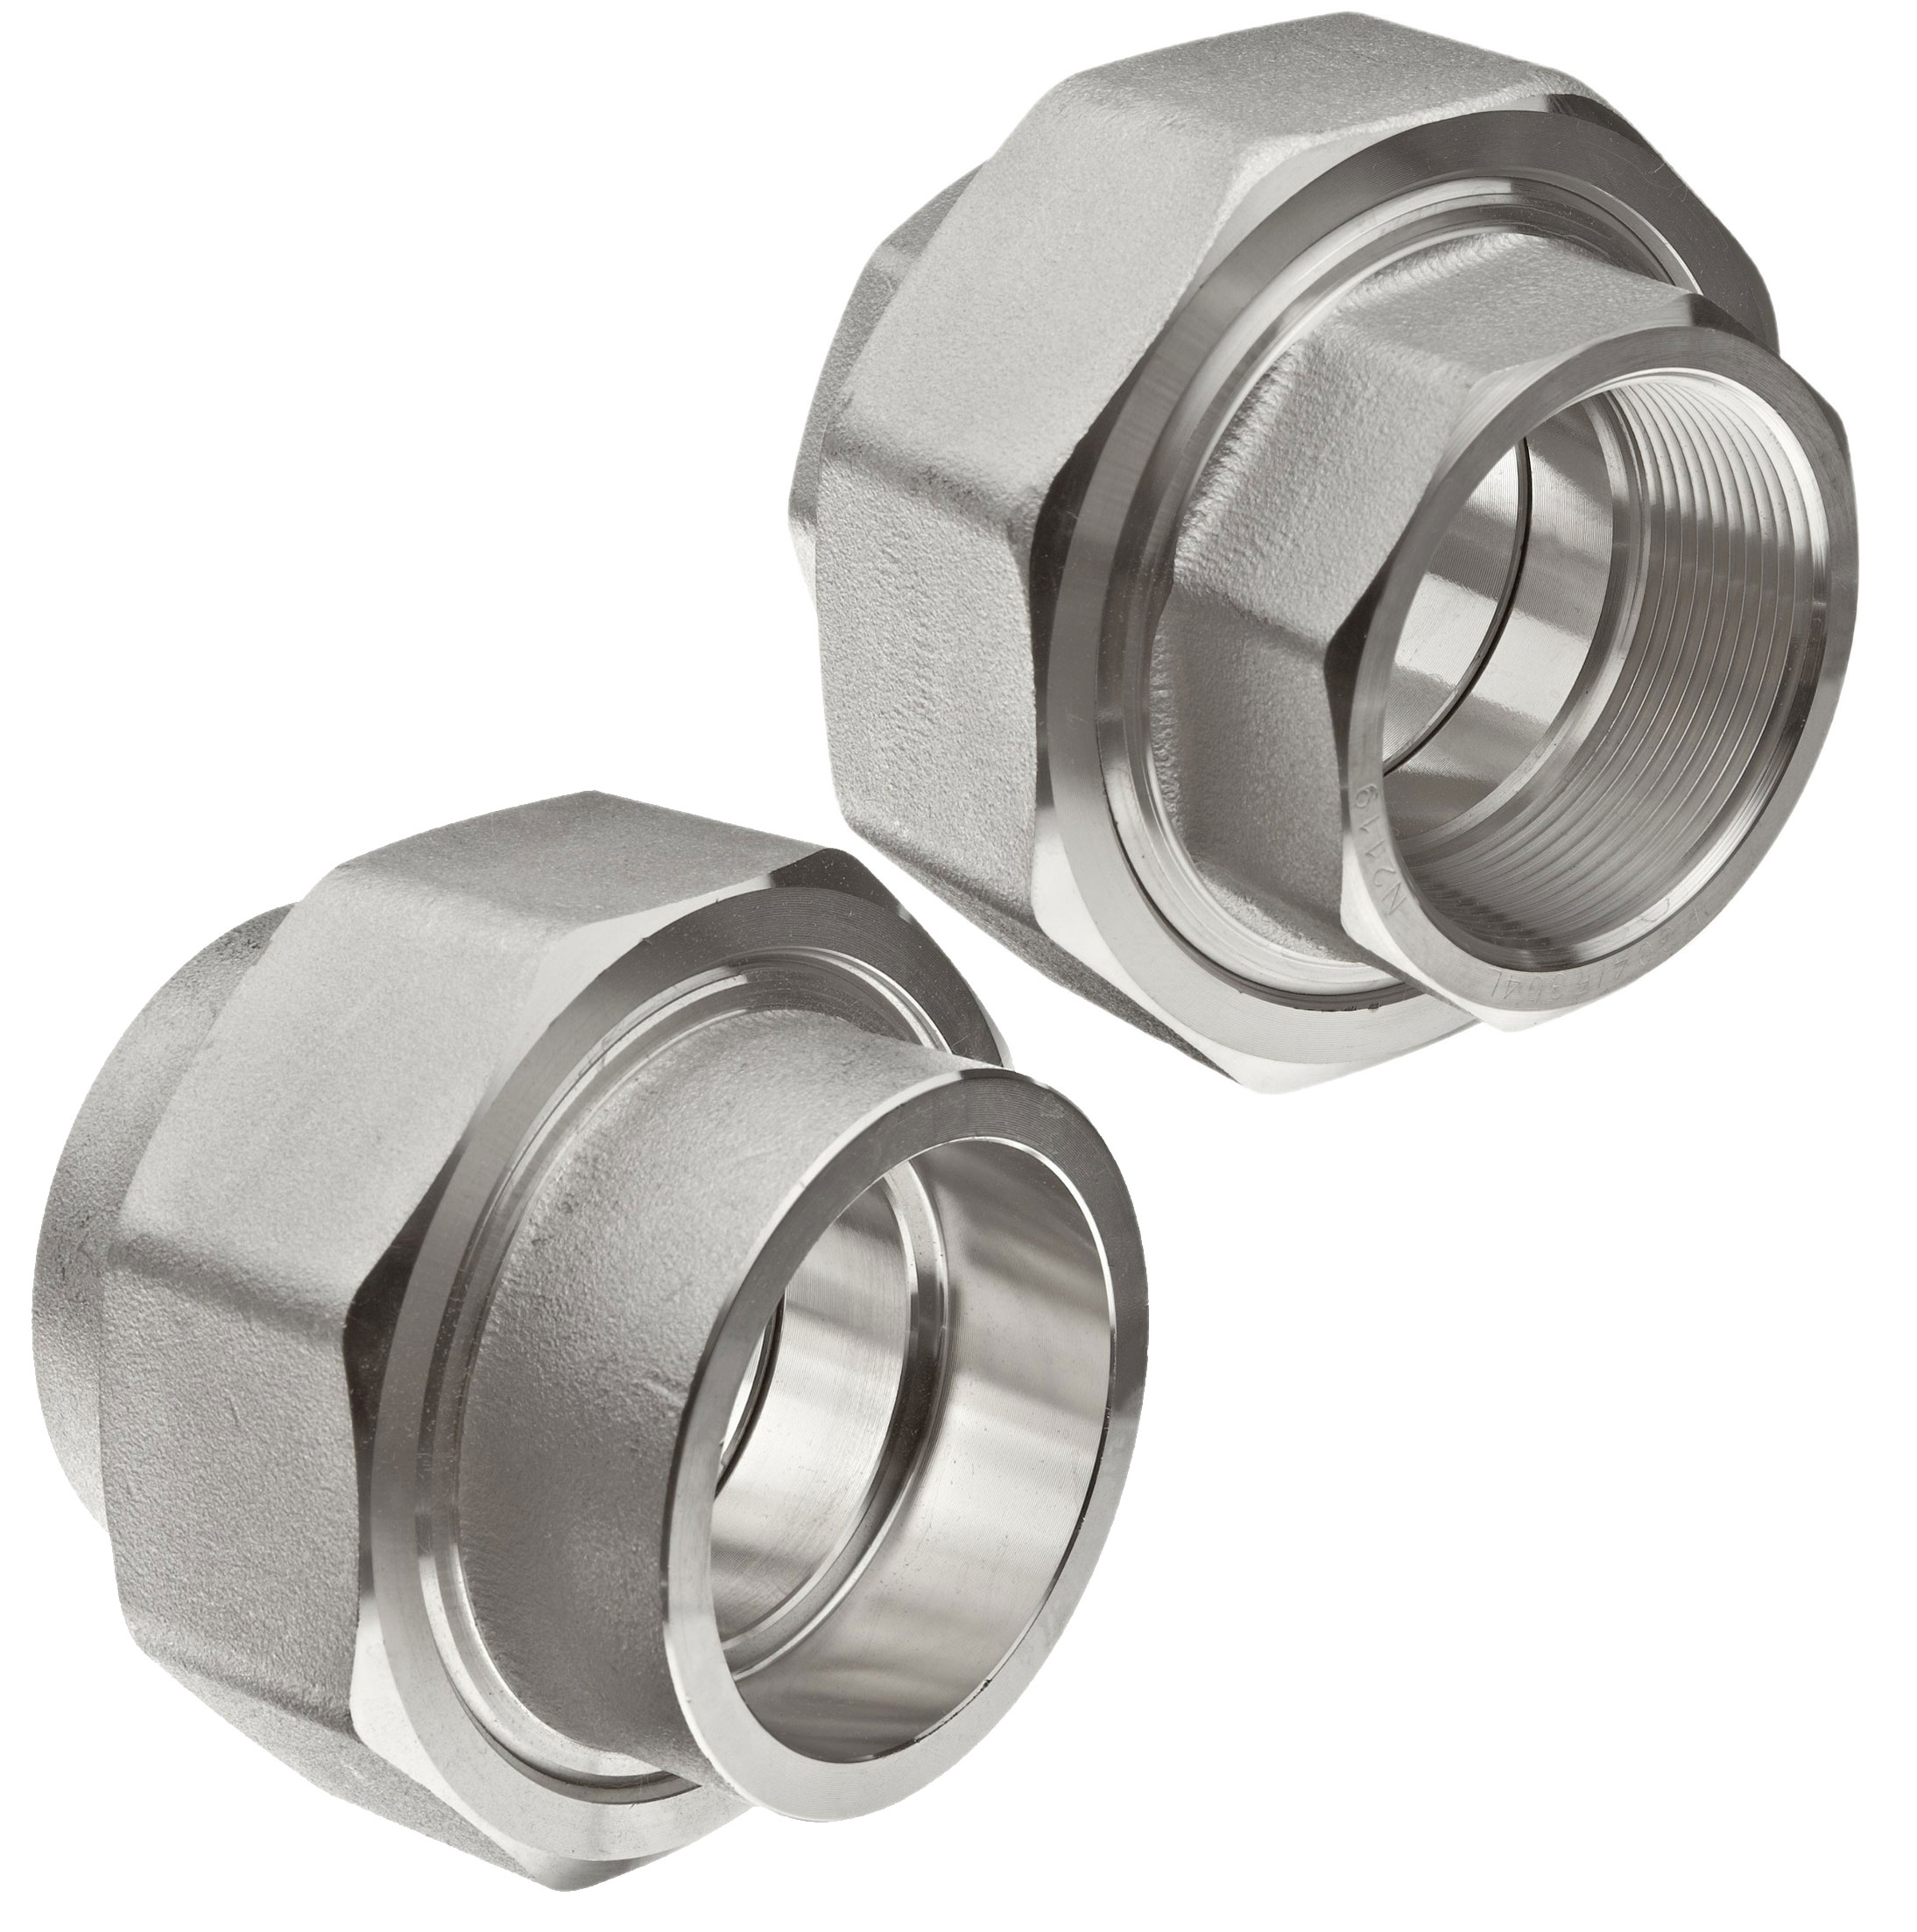 Stainless Steel 446 Forged Fittings Dynamic Forge Amp Fittings